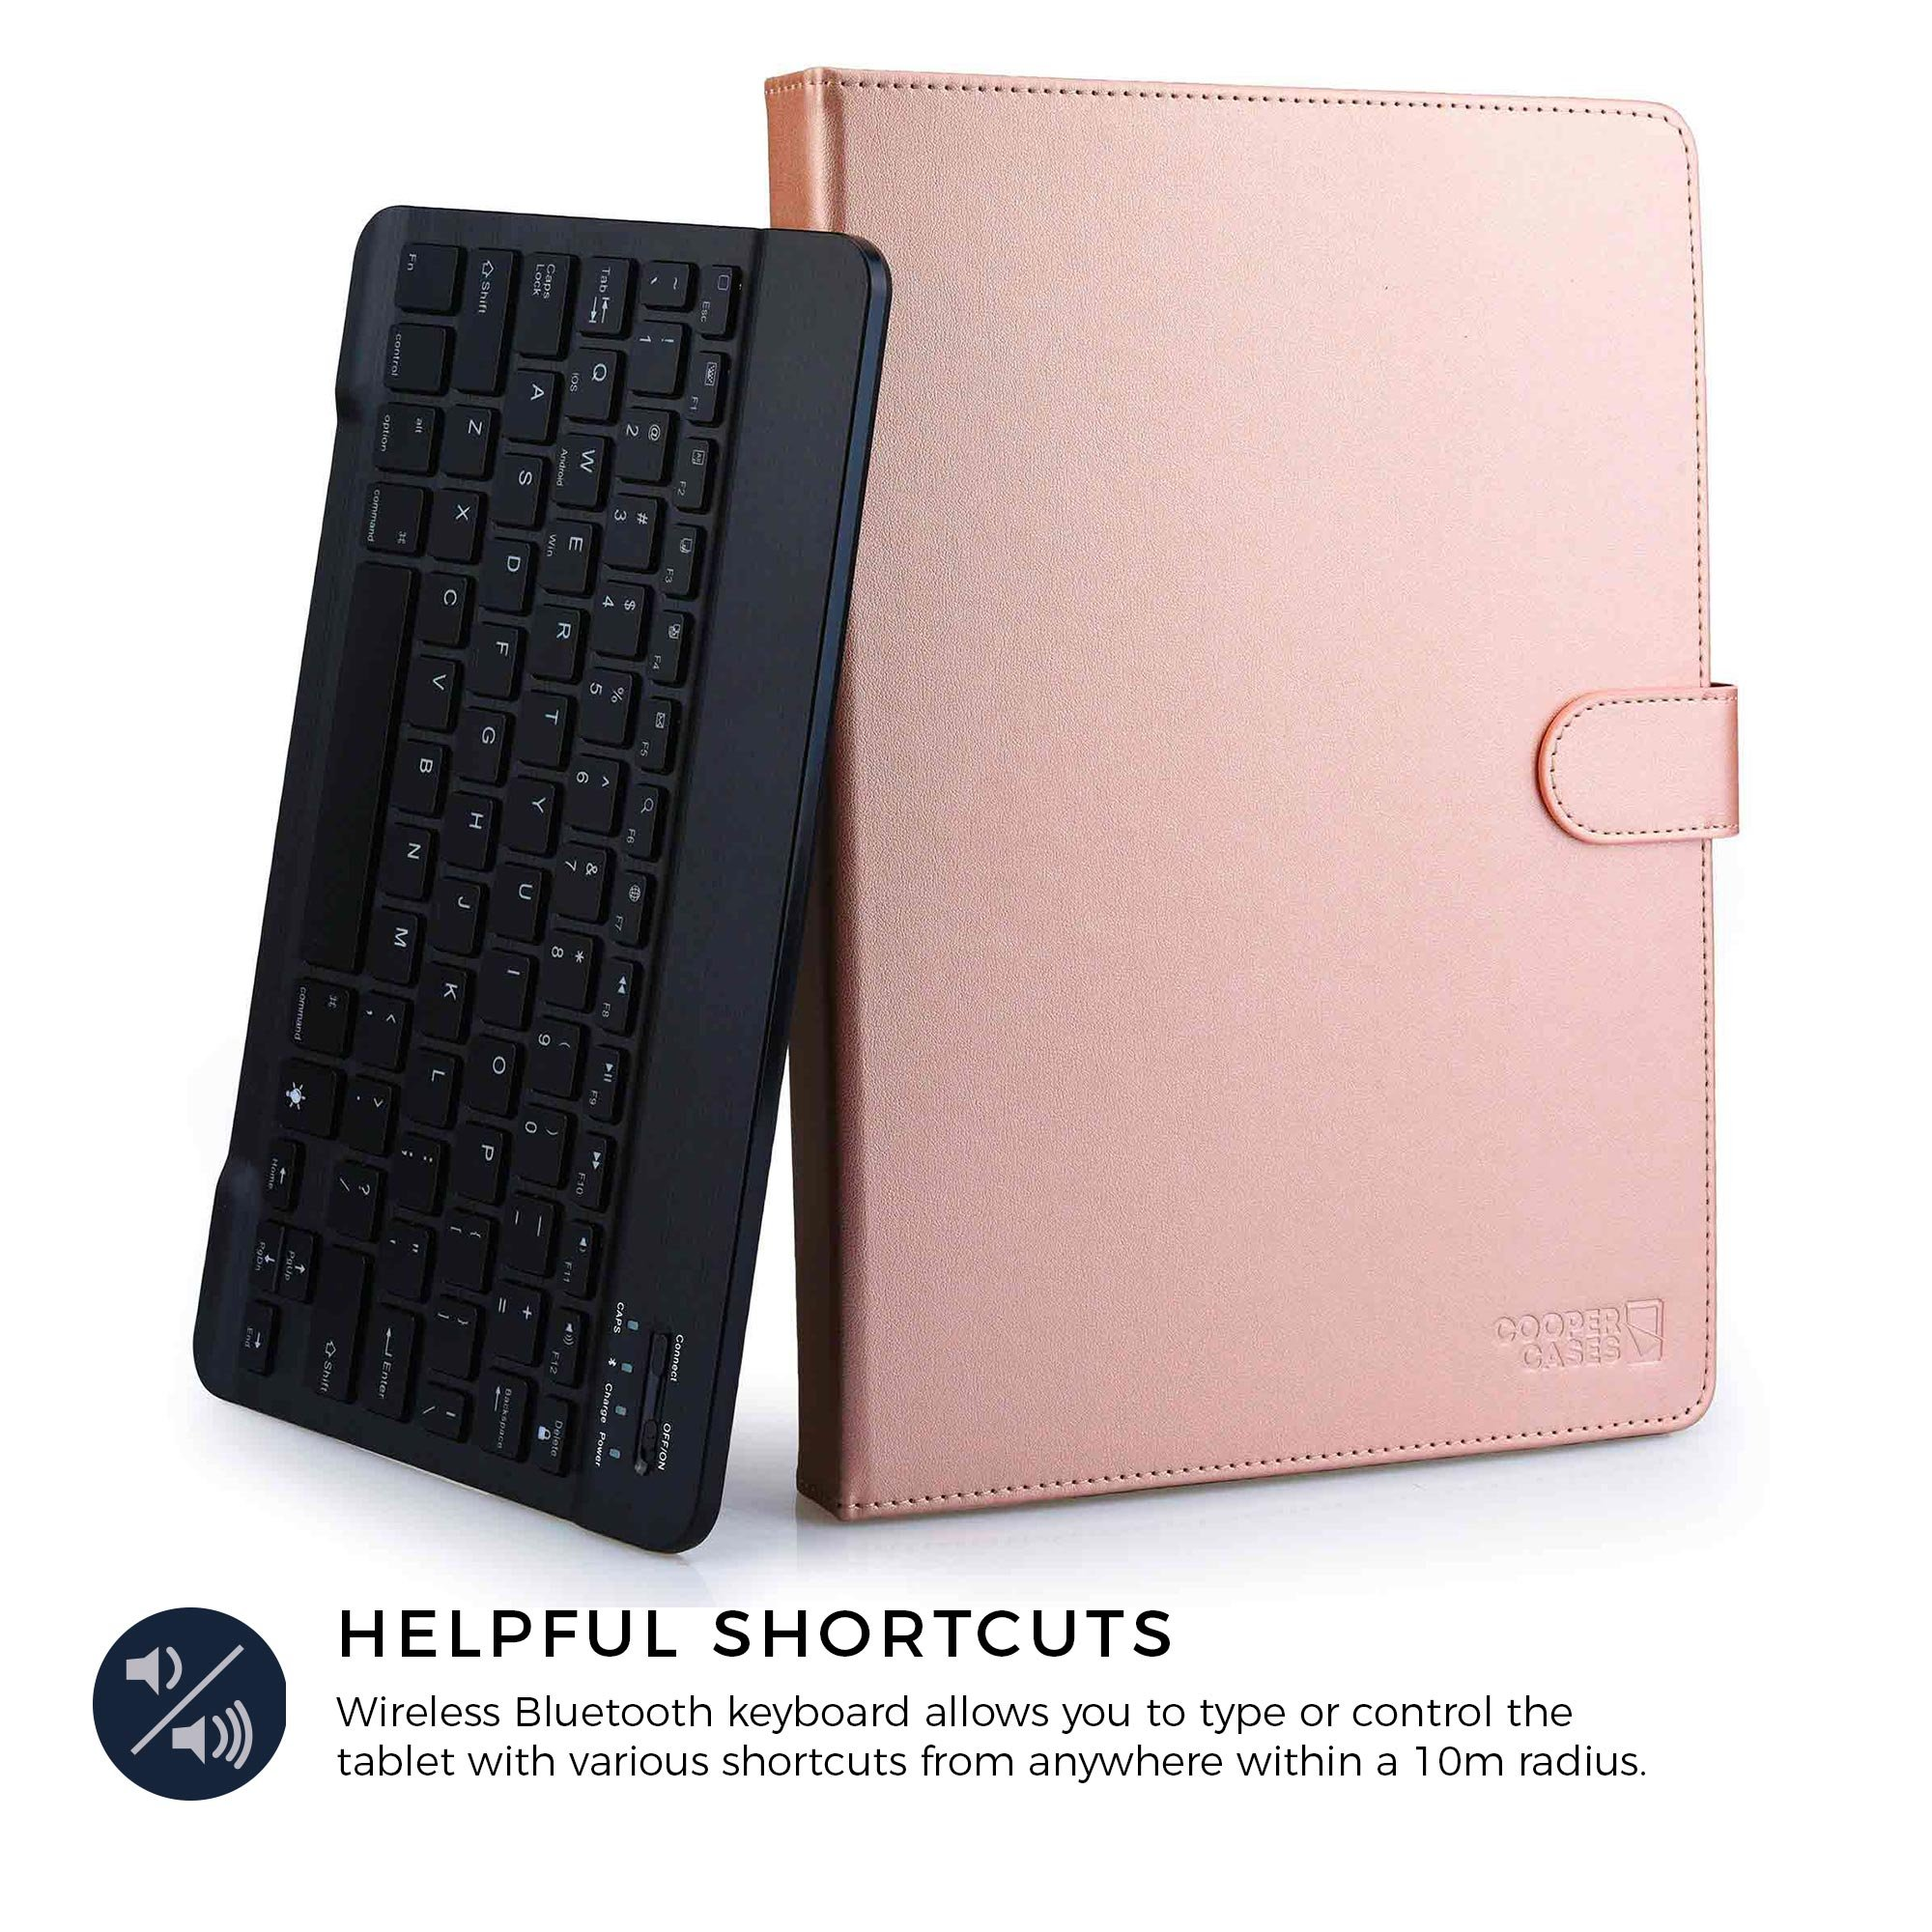 COOPER BACKLIGHT EXECUTIVE Keyboard case for 9'', 10'', 10.1'' inch tablets   2-in-1 Bluetooth Wireless Backlit Keyboard & Leather Folio Cover   7 Color LED Keys, 100HR Battery, 14 Hotkeys (Rose Gold) by Cooper Cases (Image #4)